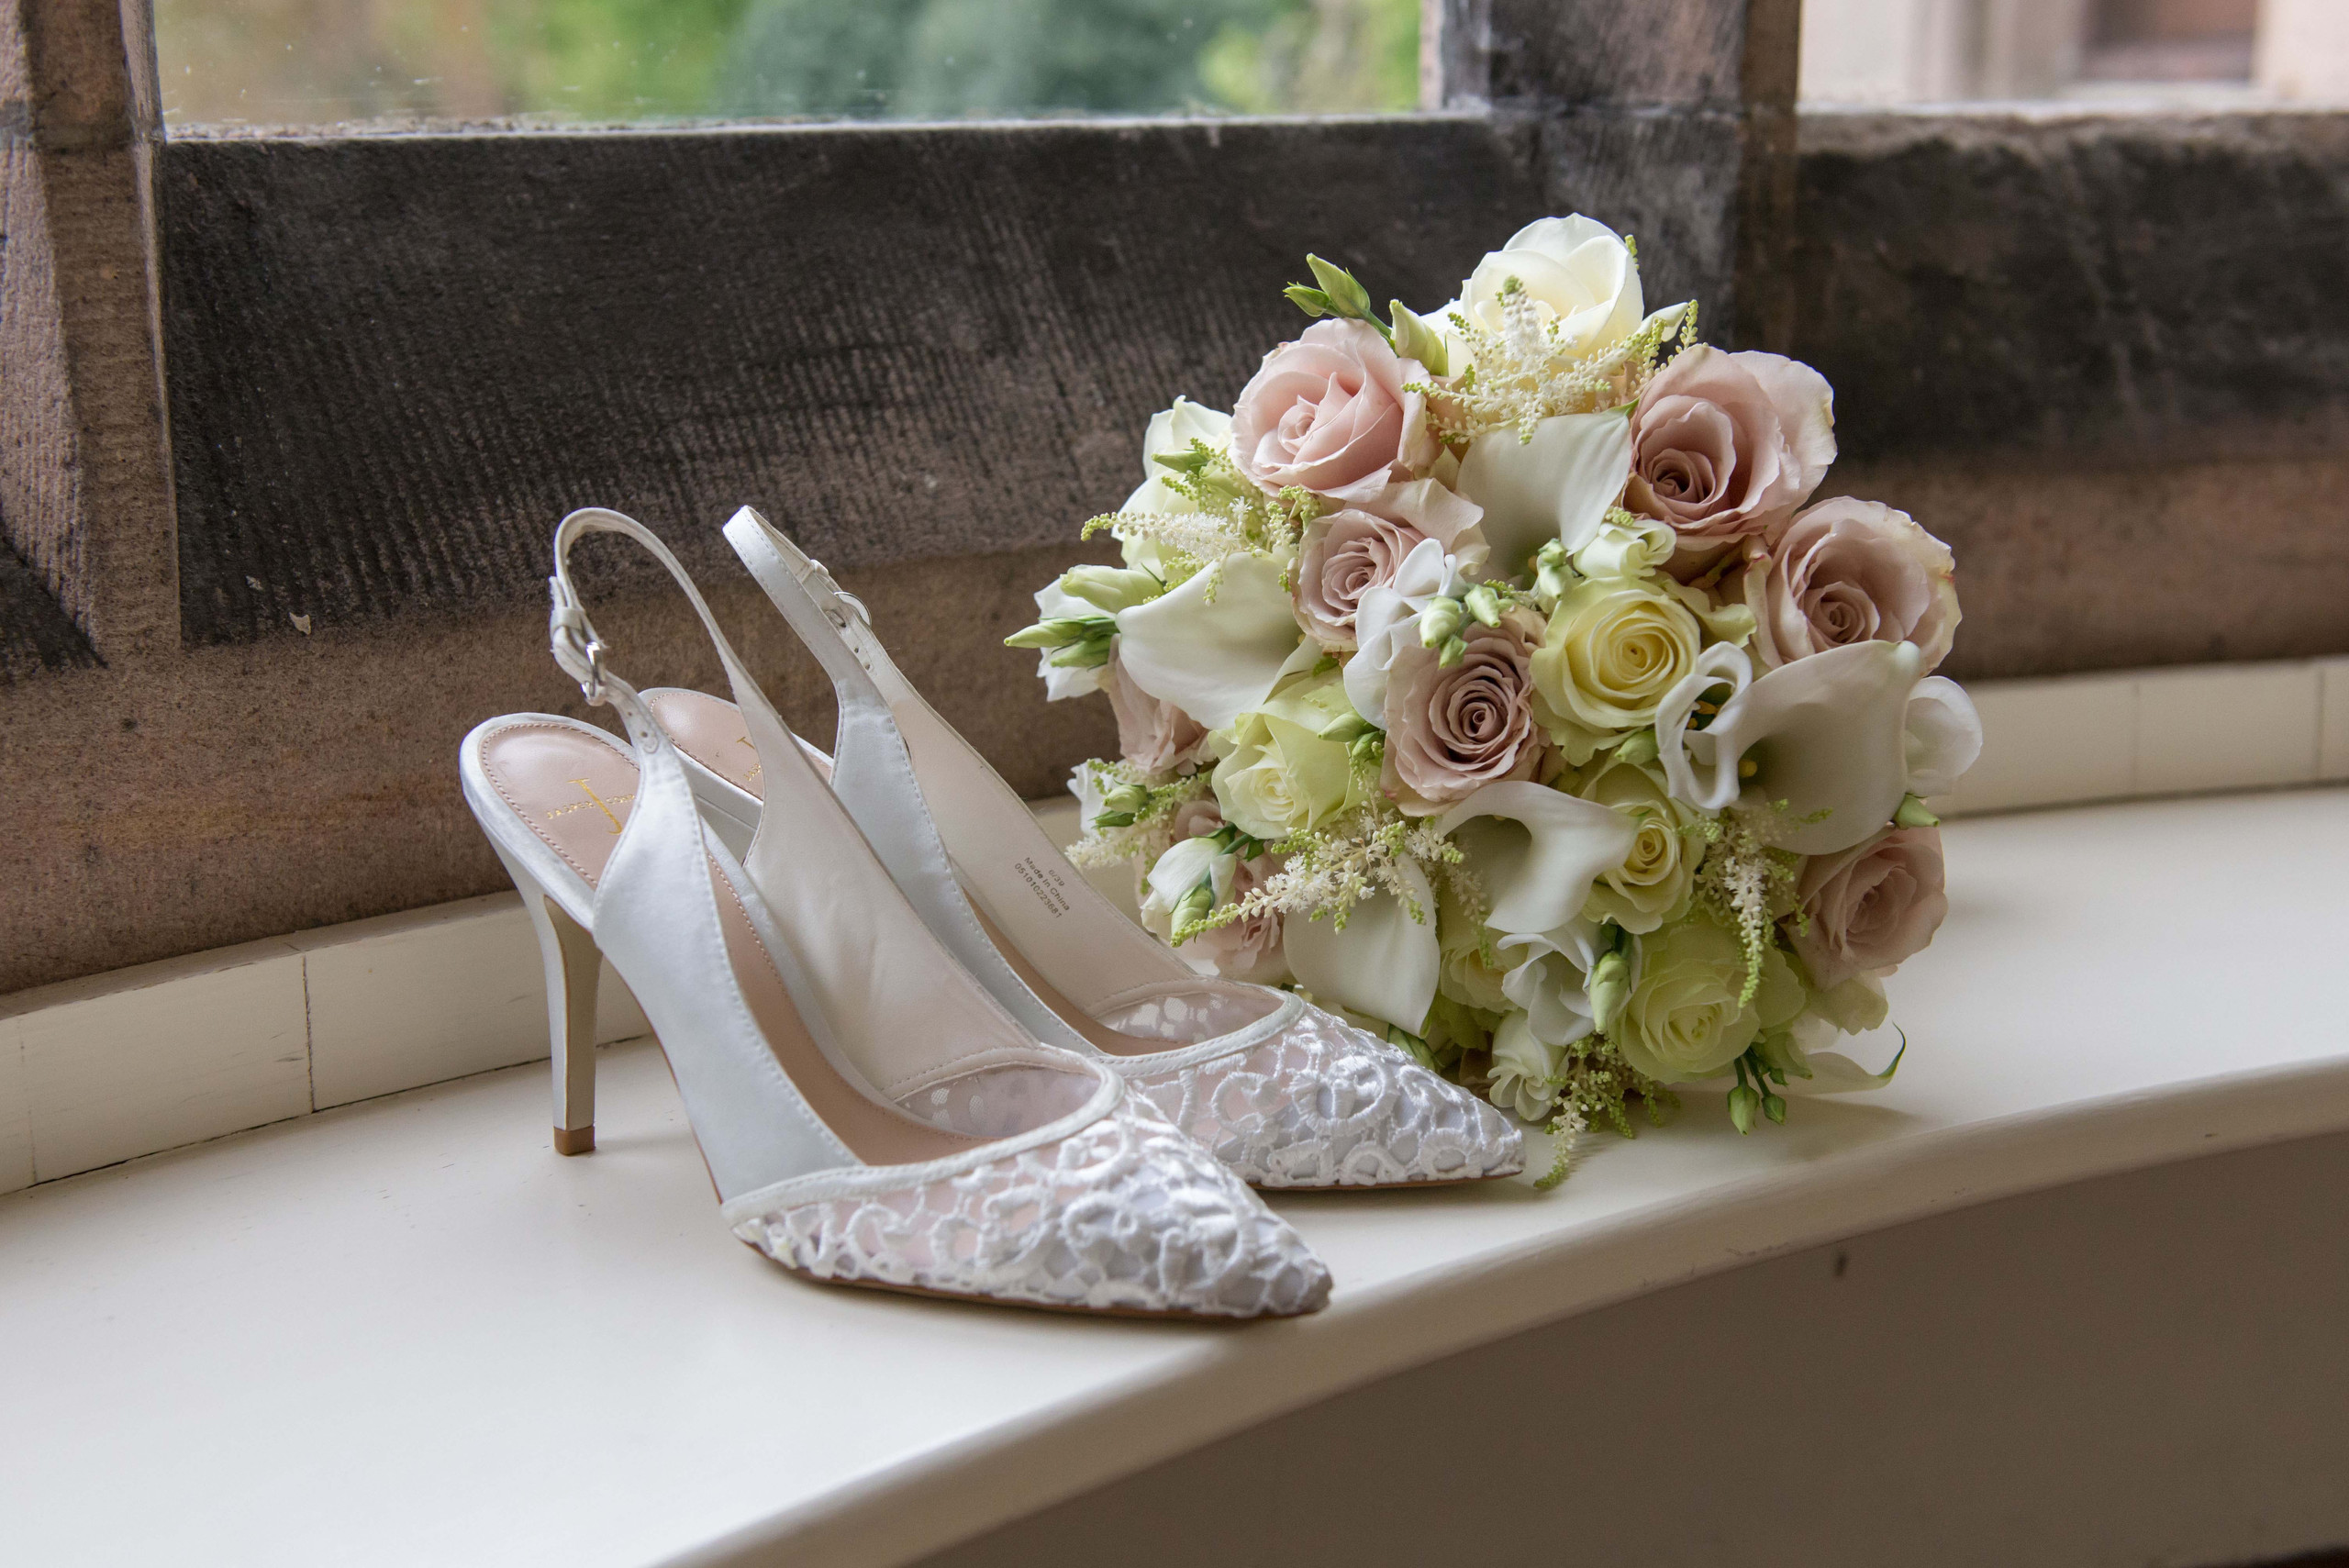 Photograph of bride's bridal bouquet with boho natural dusty pink flowers with white lilys, and white wedding shoes at Ellingham Hall venue in Chatham in Northumberland